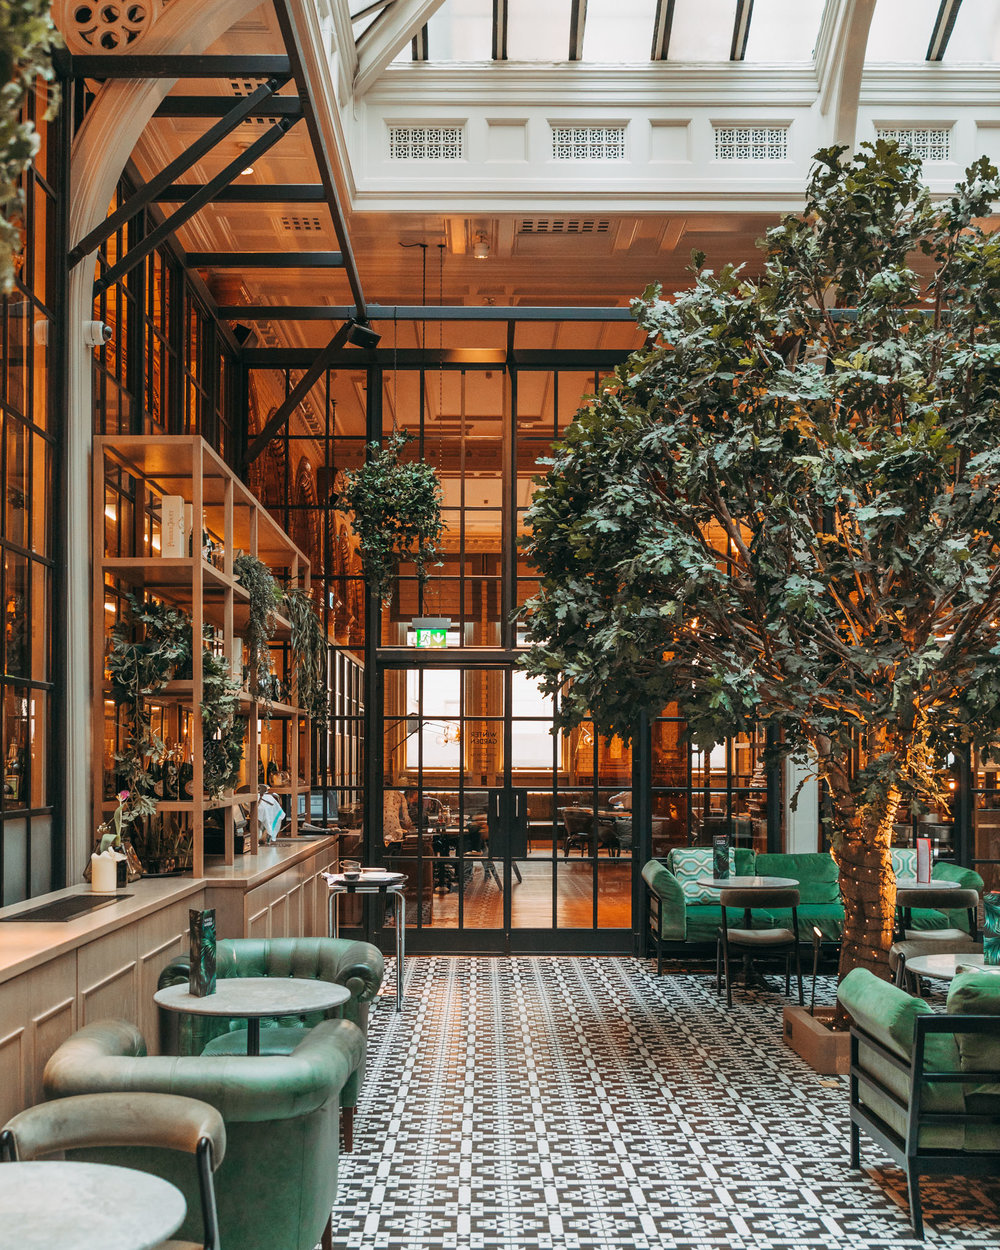 The Refuge in Manchester // 11 INSTAGRAM-WORTHY PHOTO SPOTS IN MANCHESTER, ENGLAND // www.readysetjetset.net #readysetjetset #manchester #england #uk #unitedkingdom #cityguide #travel